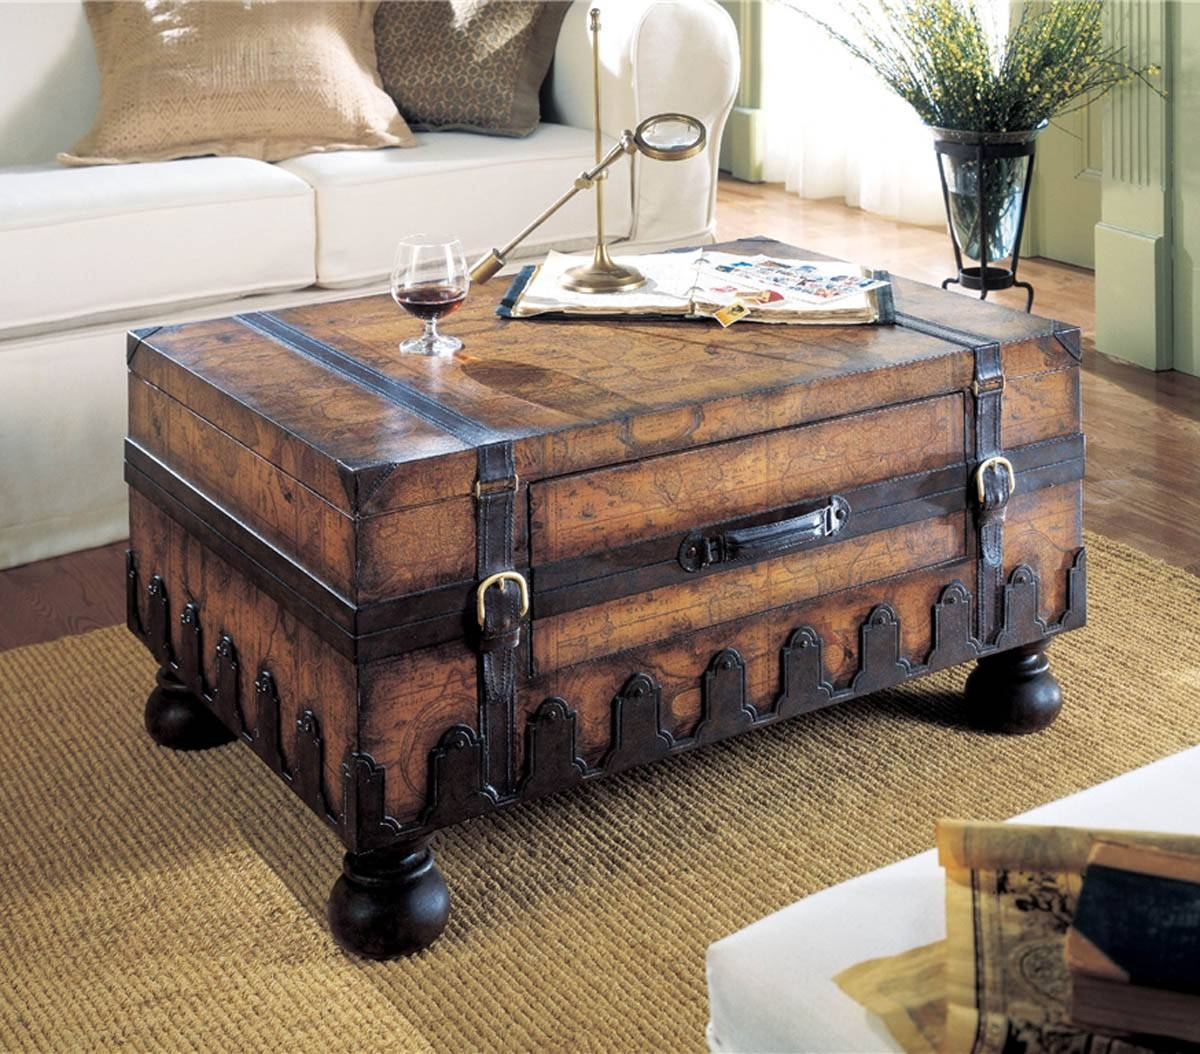 Incredible Suitcase Coffee Table With 1000 Images About My Style inside Quirky Coffee Tables (Image 18 of 30)